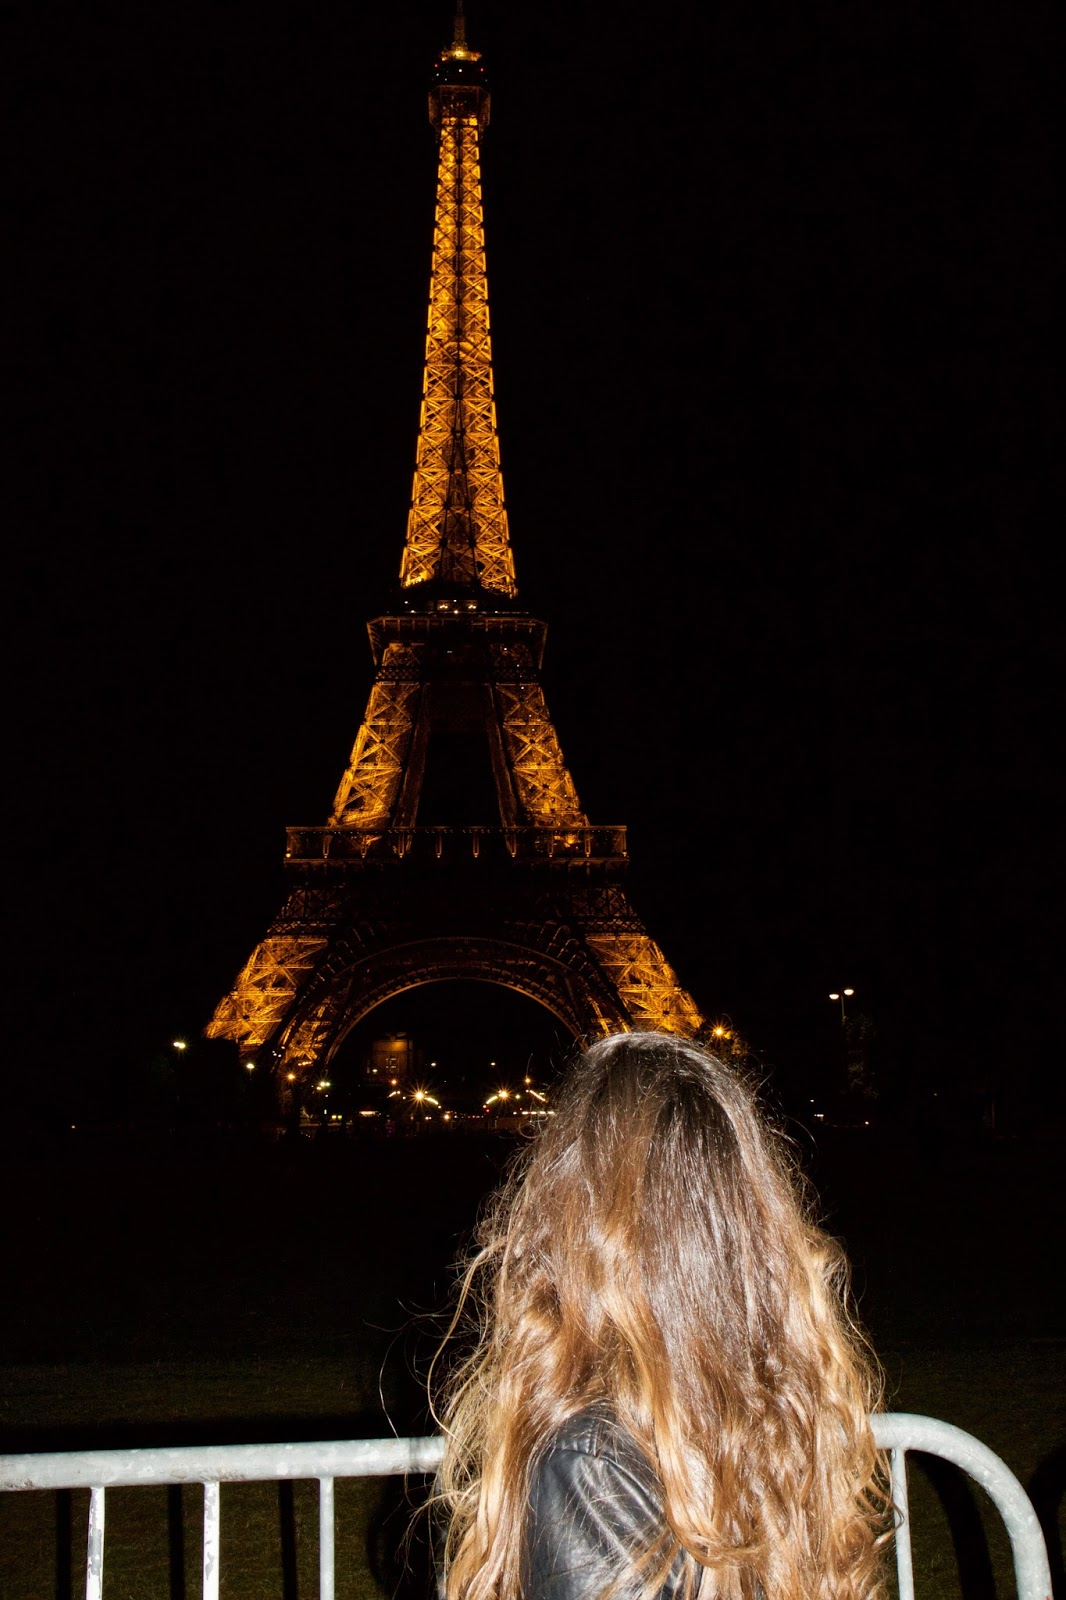 Fashion blogger Kathleen Harper at the Eiffel Tower at night in Paris